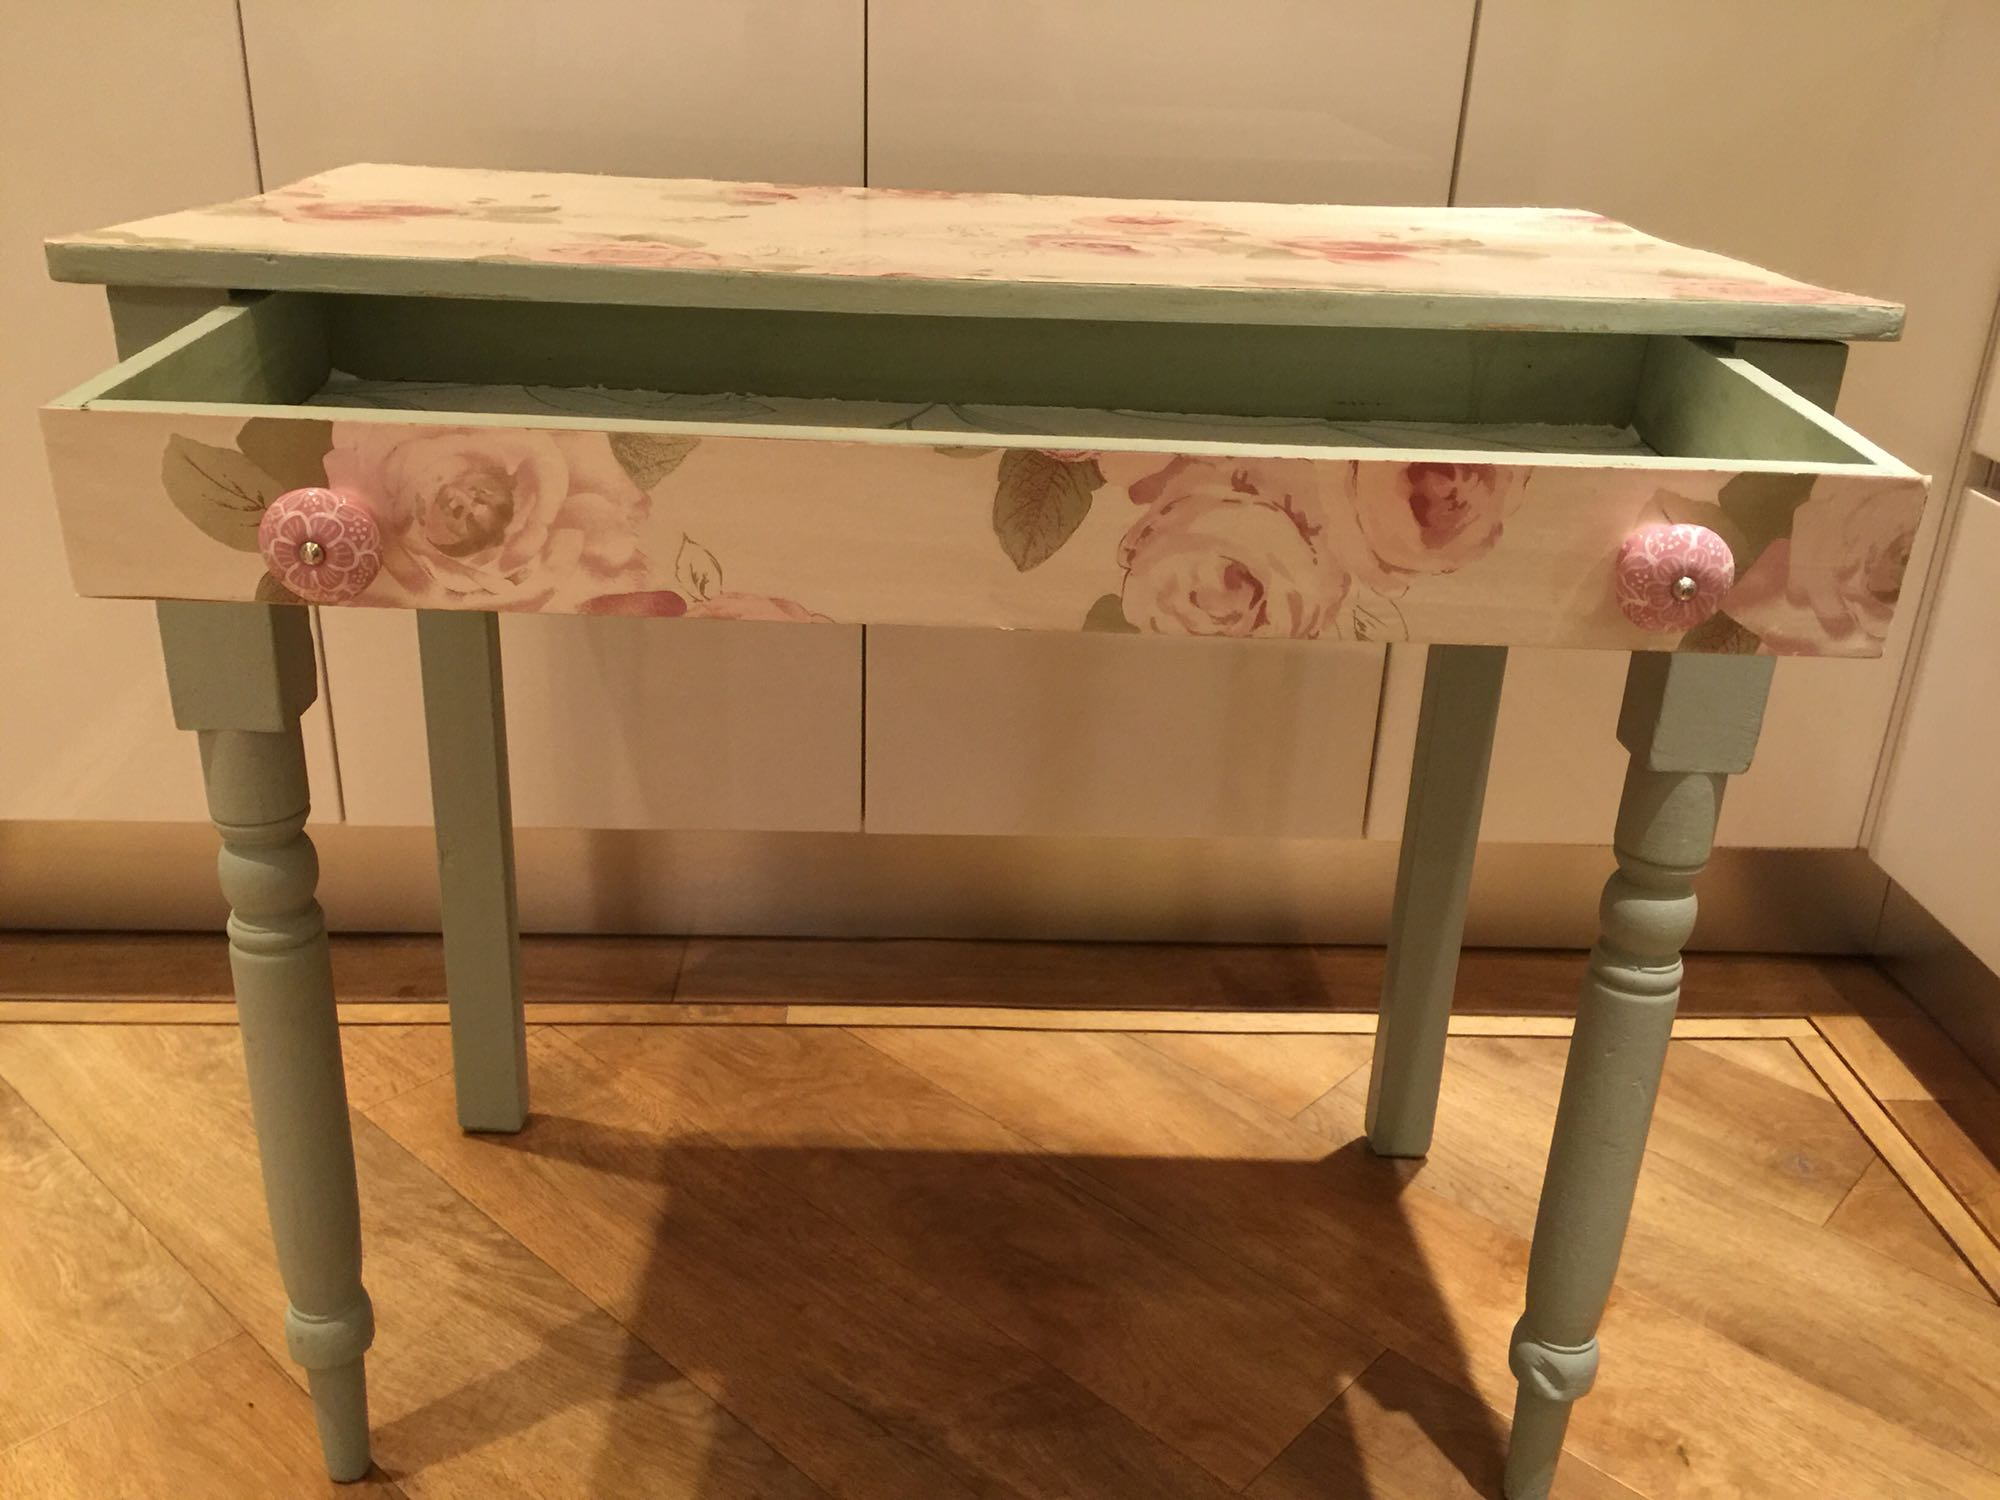 Console table  dressing table - Bromsgrove, Worcestershire - Console table/ dressing table with drawer Decoupaged - Bromsgrove, Worcestershire